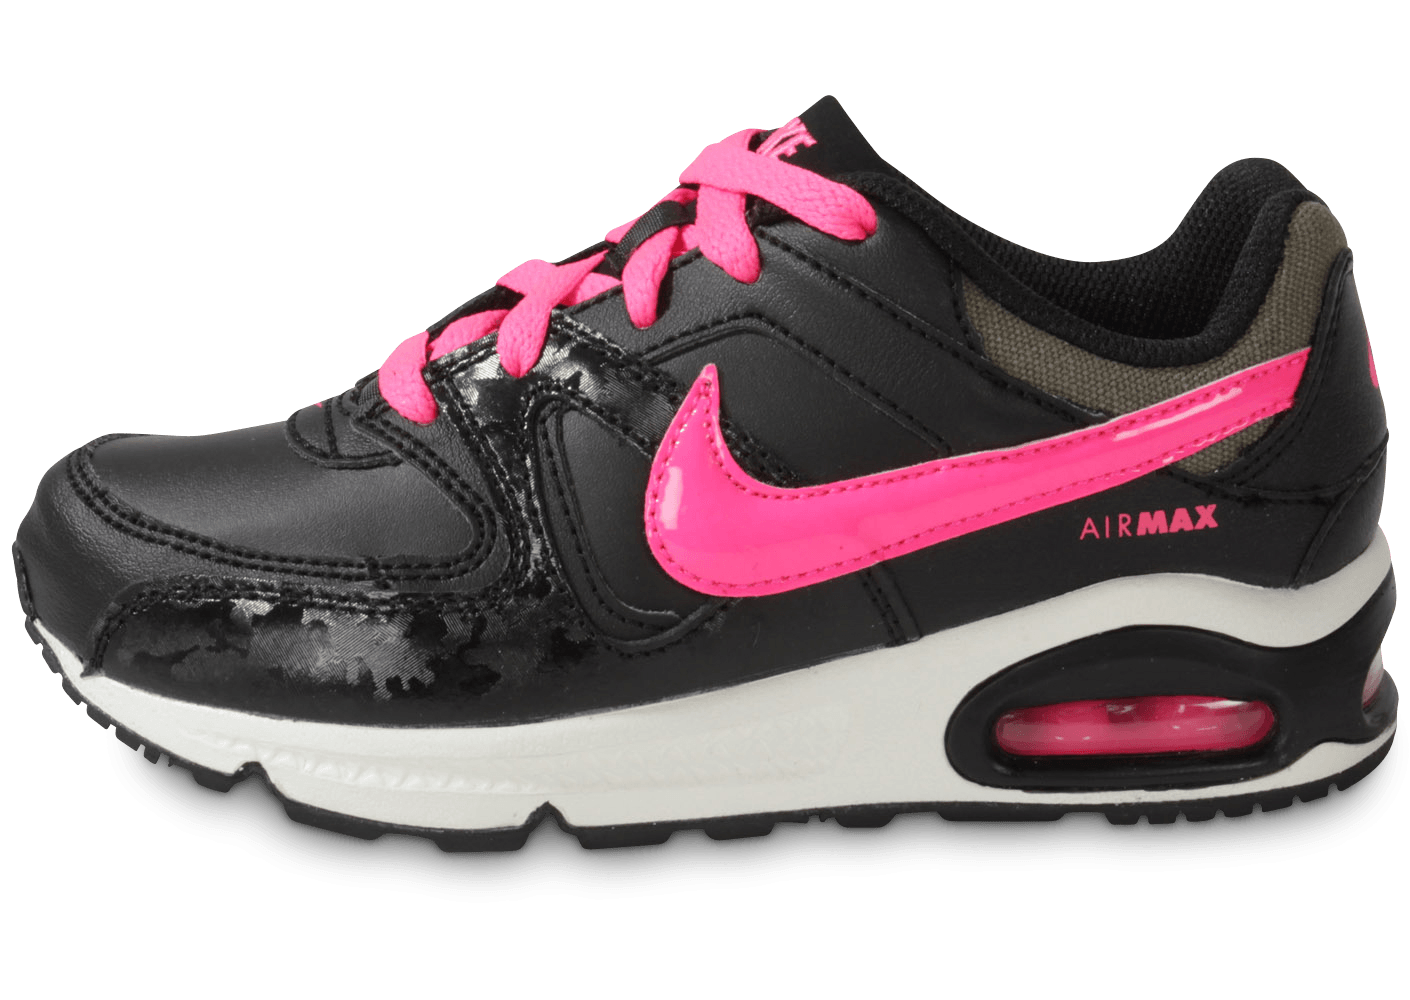 nike air max noire et rose. Black Bedroom Furniture Sets. Home Design Ideas